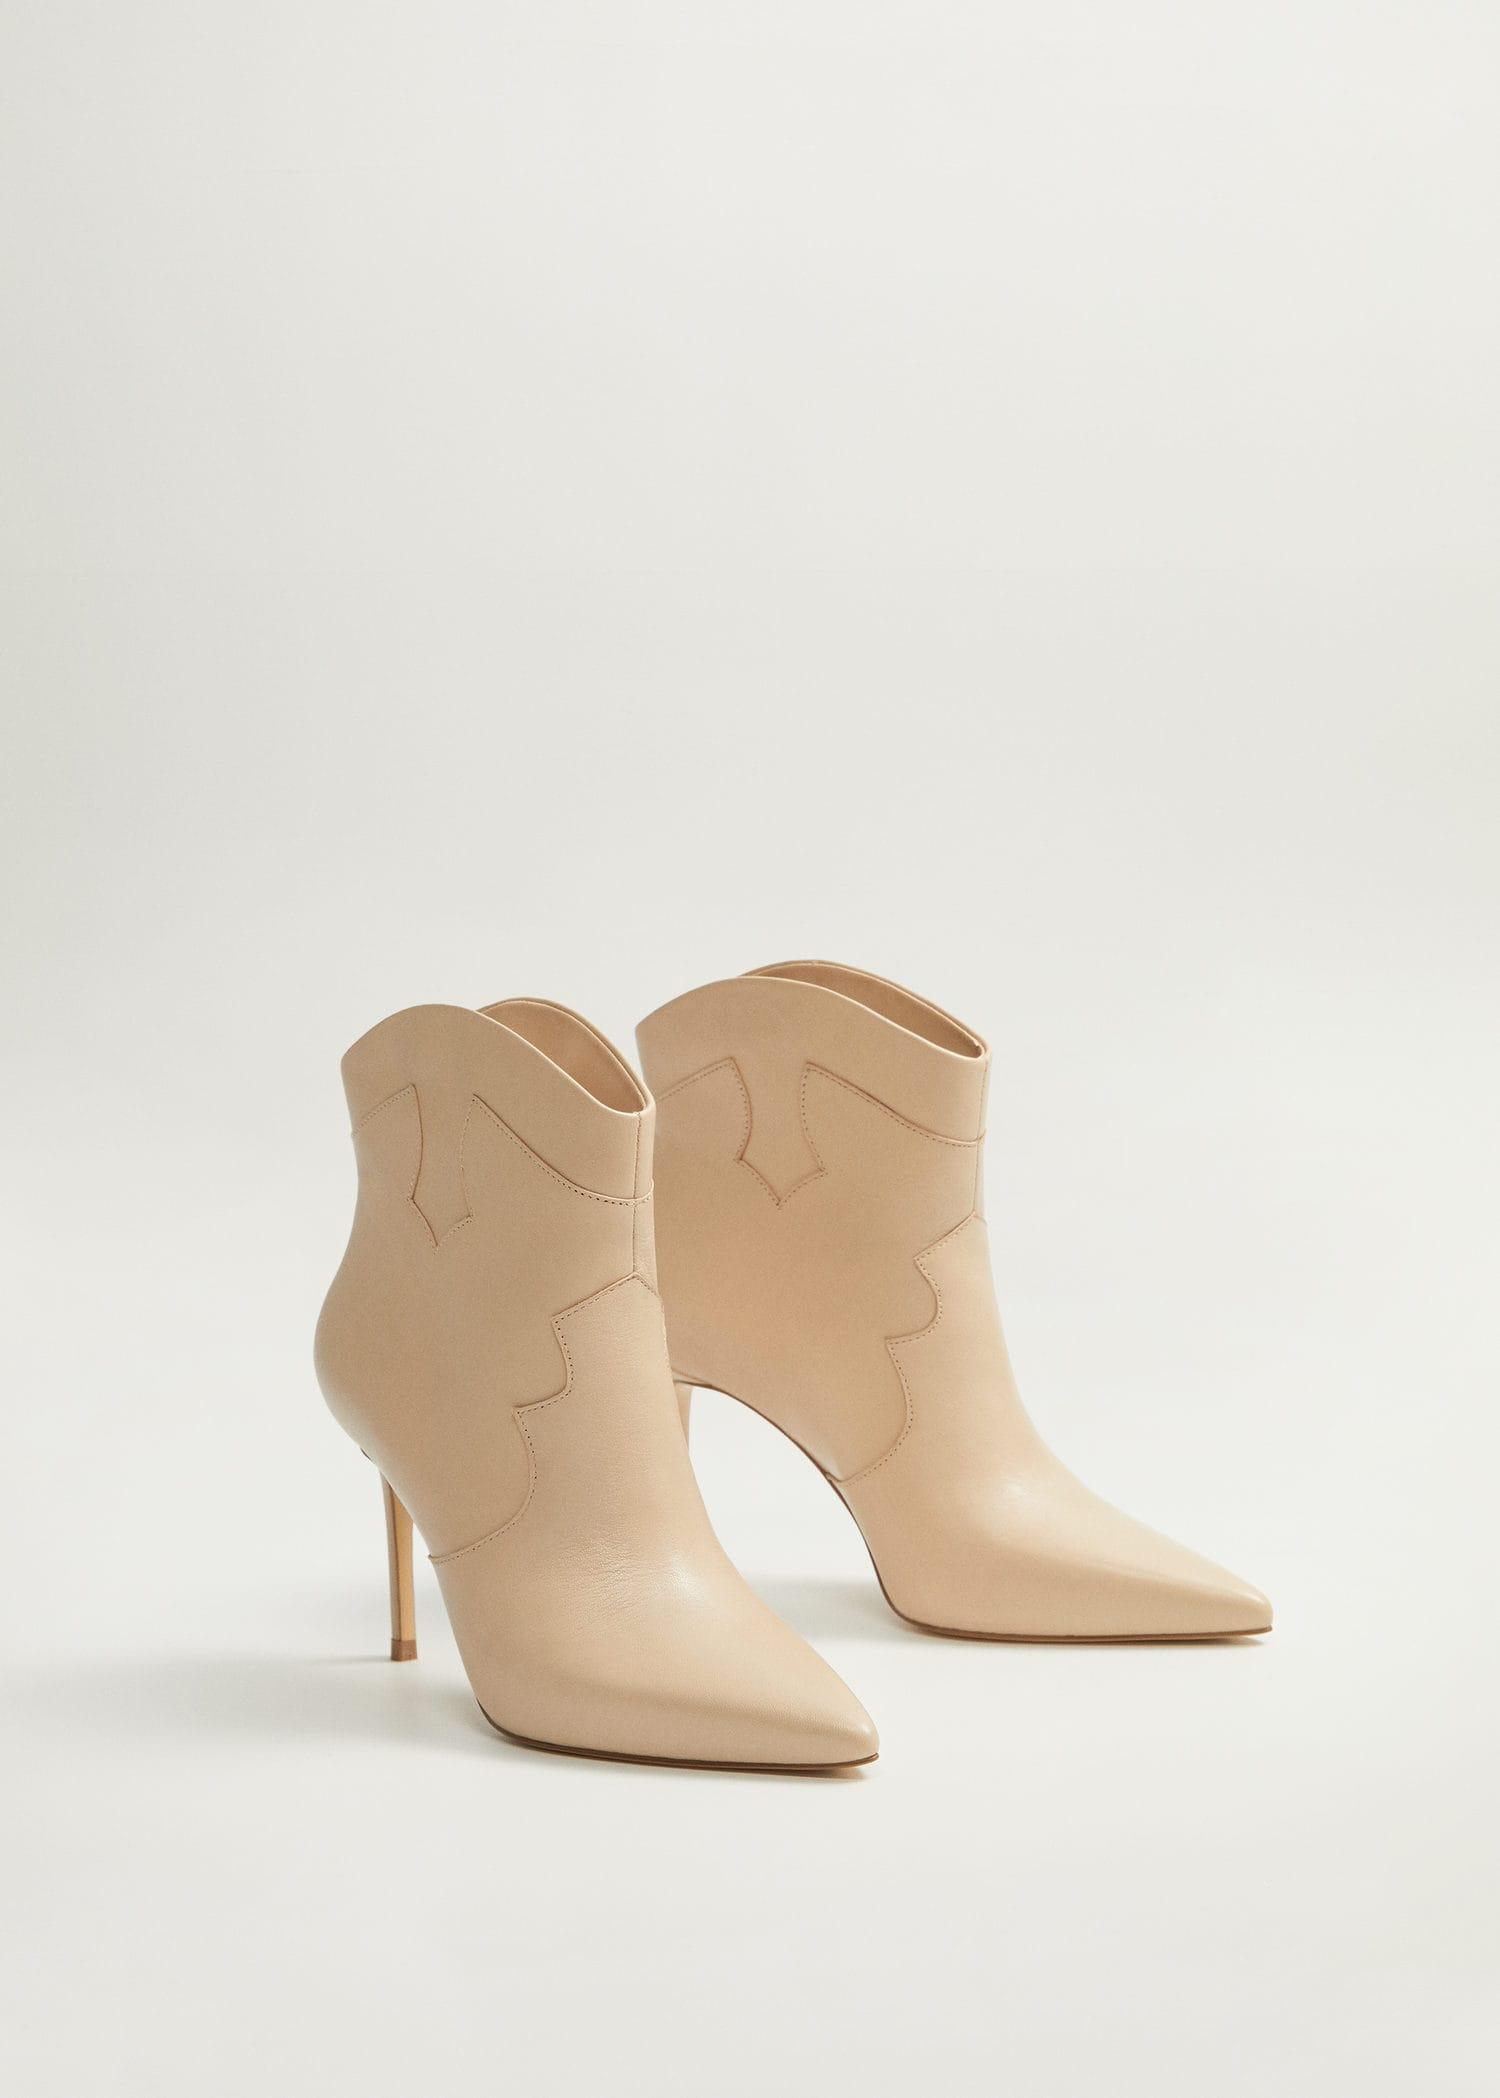 Mango Heel Leather Ankle Boot in Nude